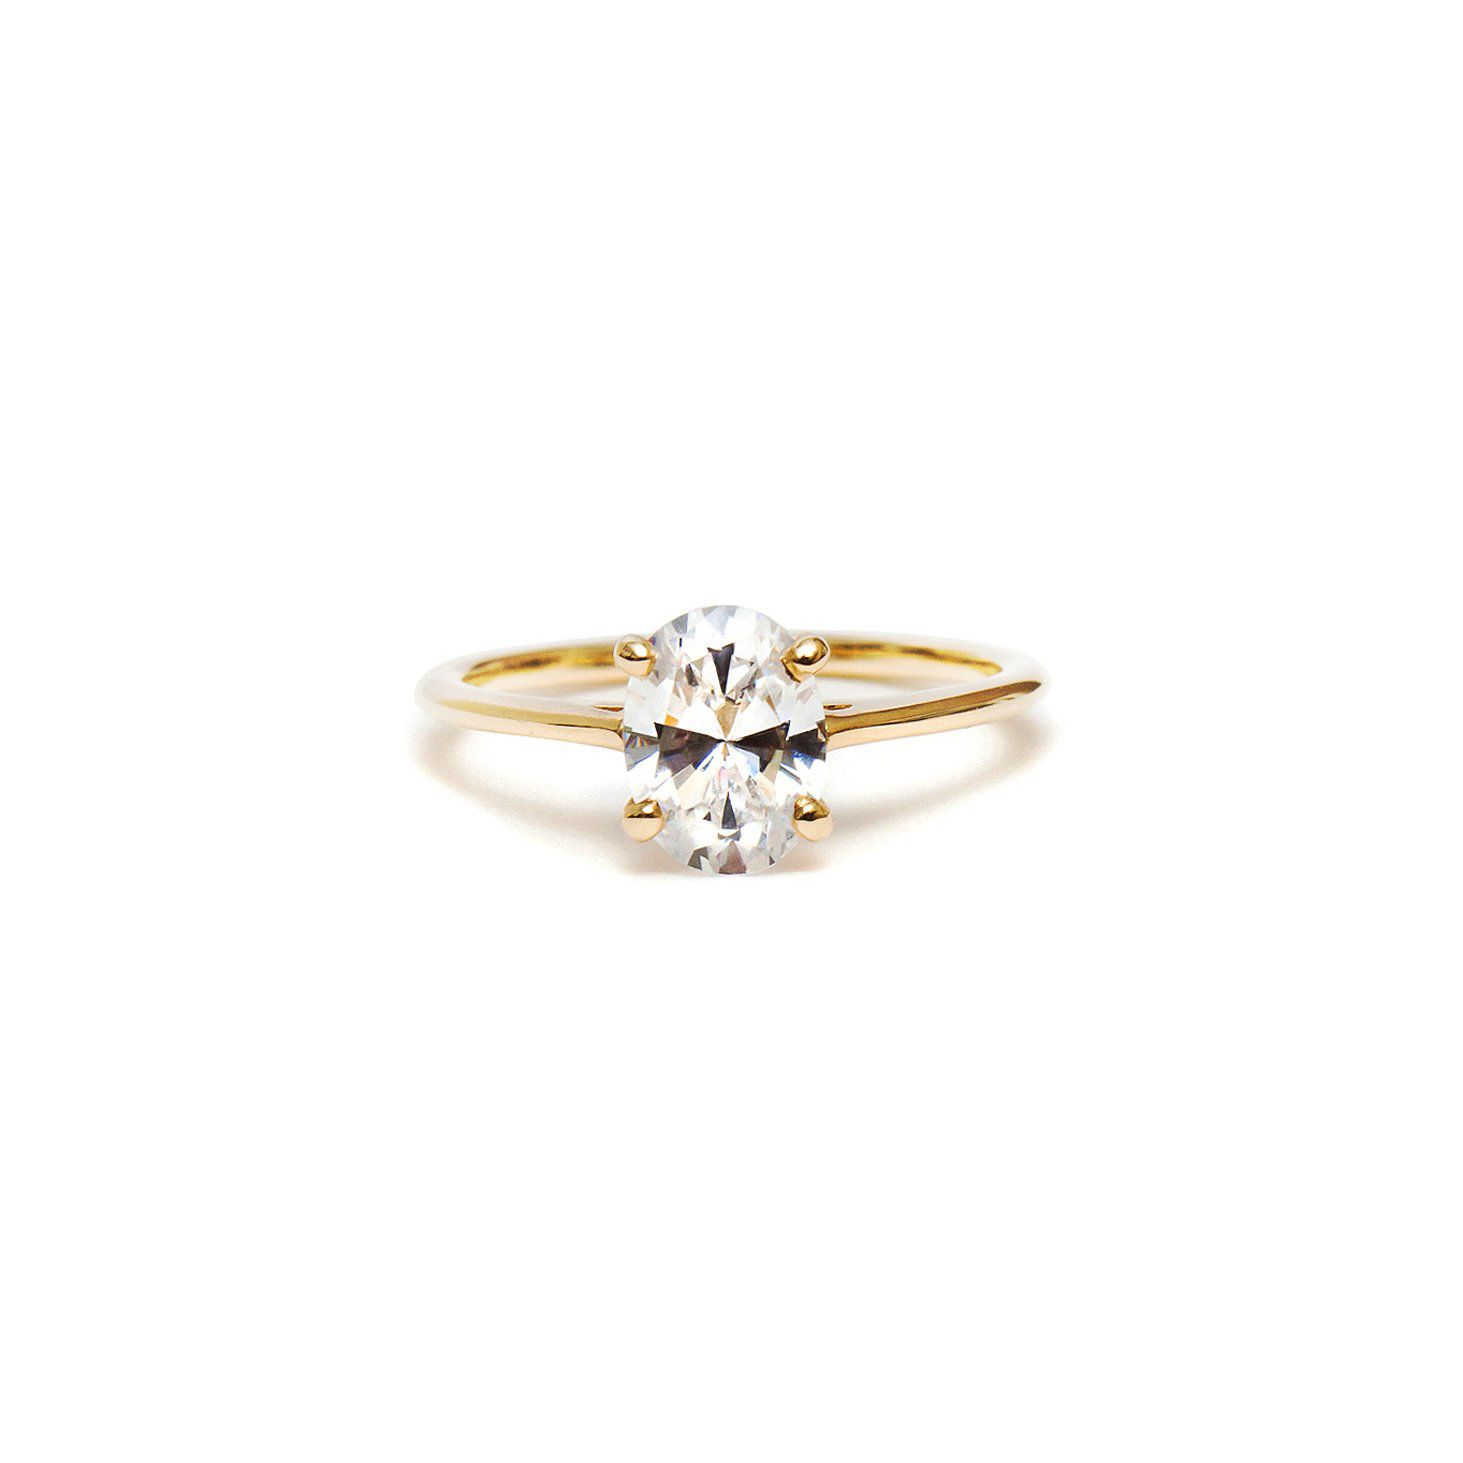 Diamond engagement ring with yellow gold band on a white background